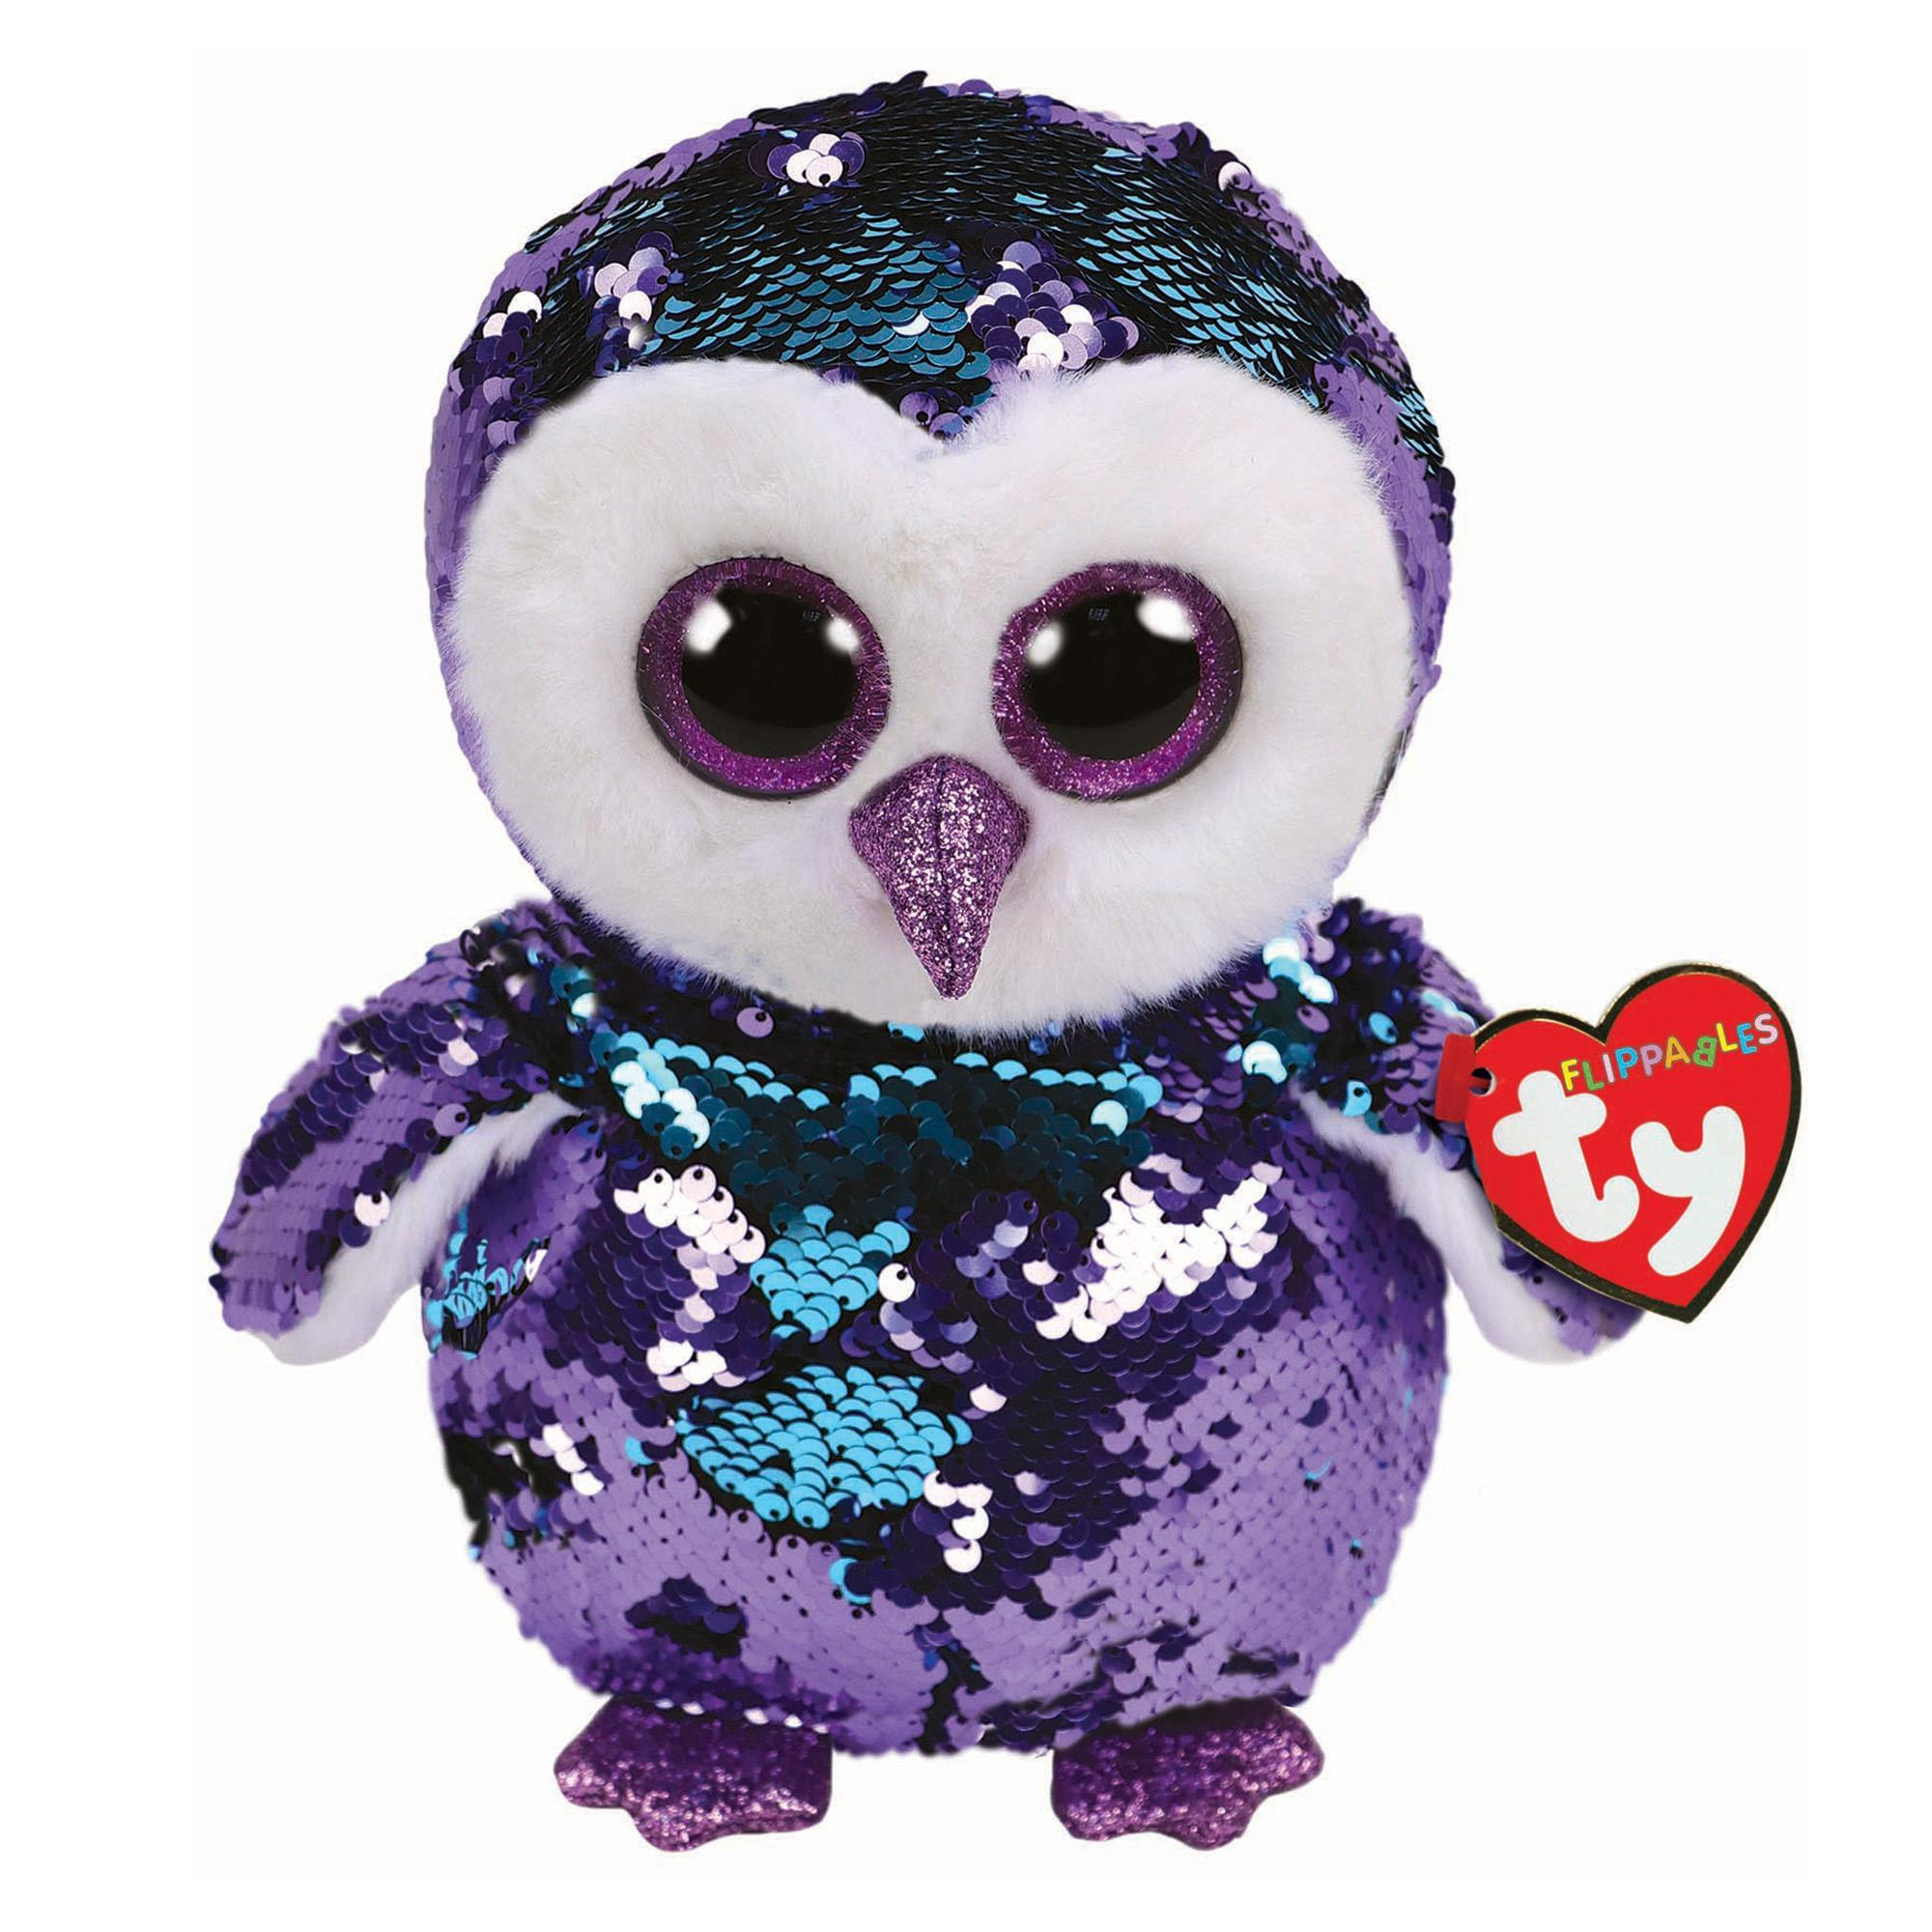 Beanie Boo Sequins - Medium - Moonlight Owl-Yarrawonga Fun and Games